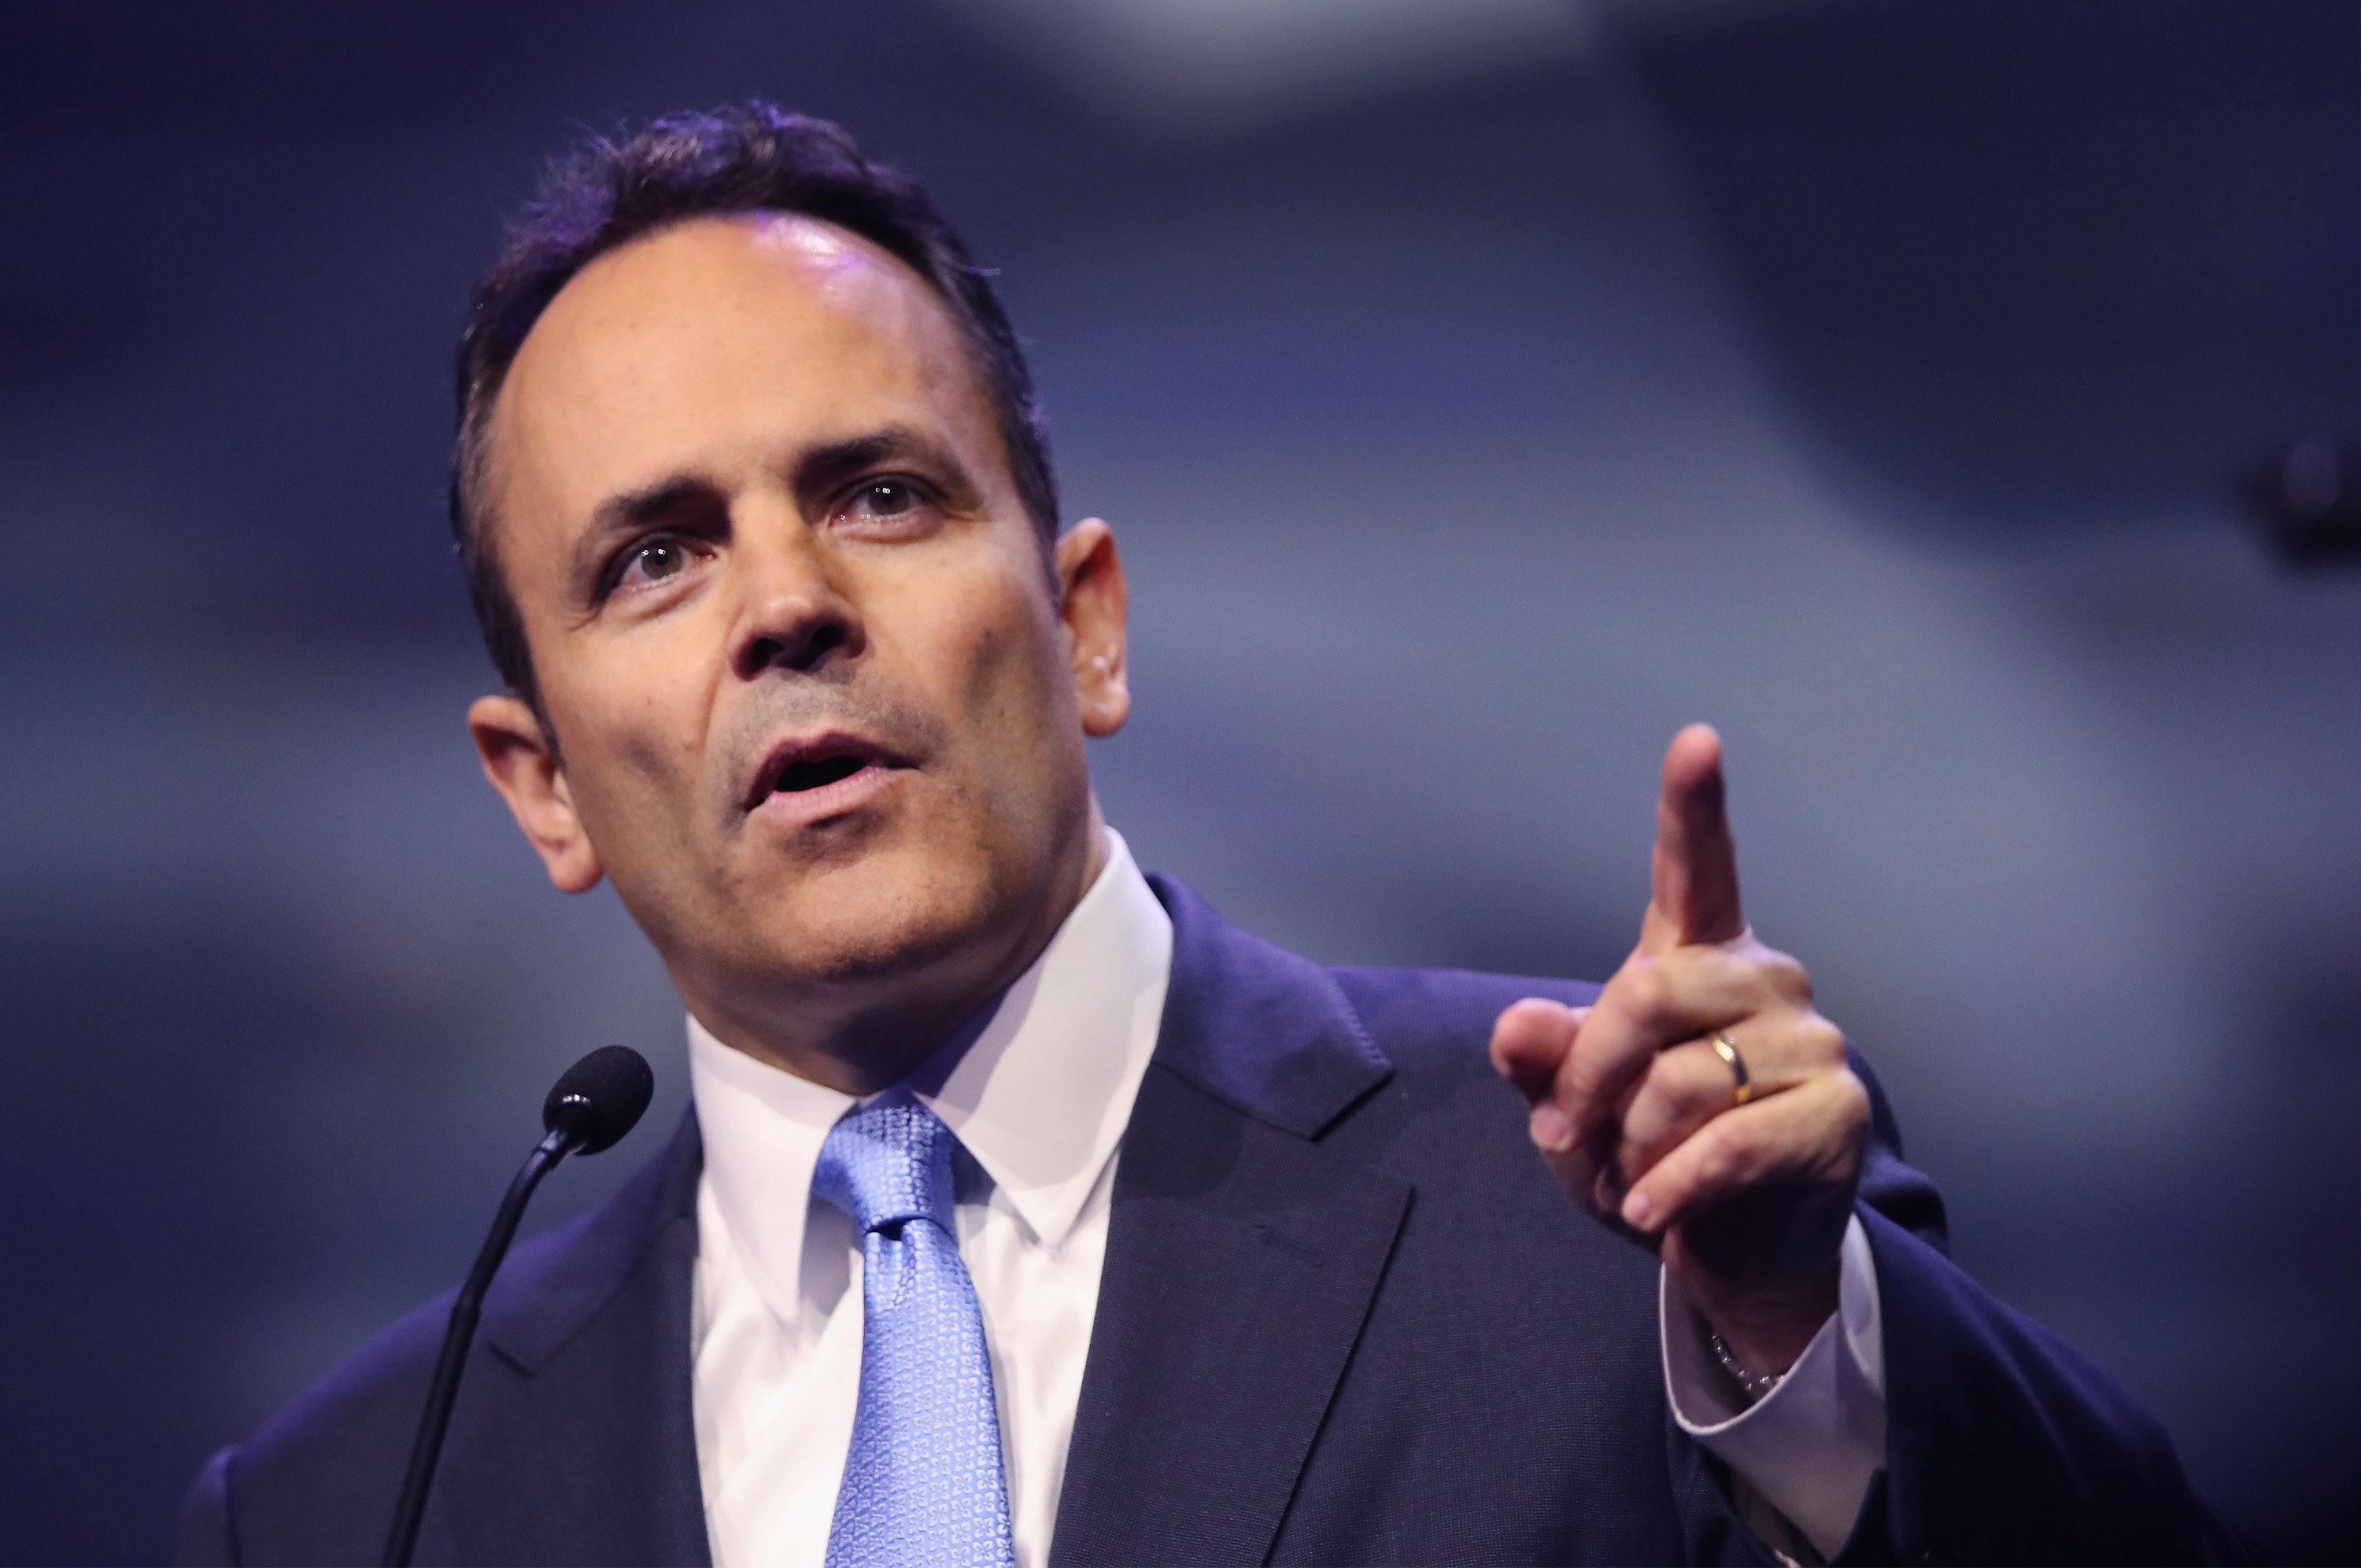 Kentucky Gov. Matt Bevin (R) campaigned on making sweeping changes to the state's ailing pension system.